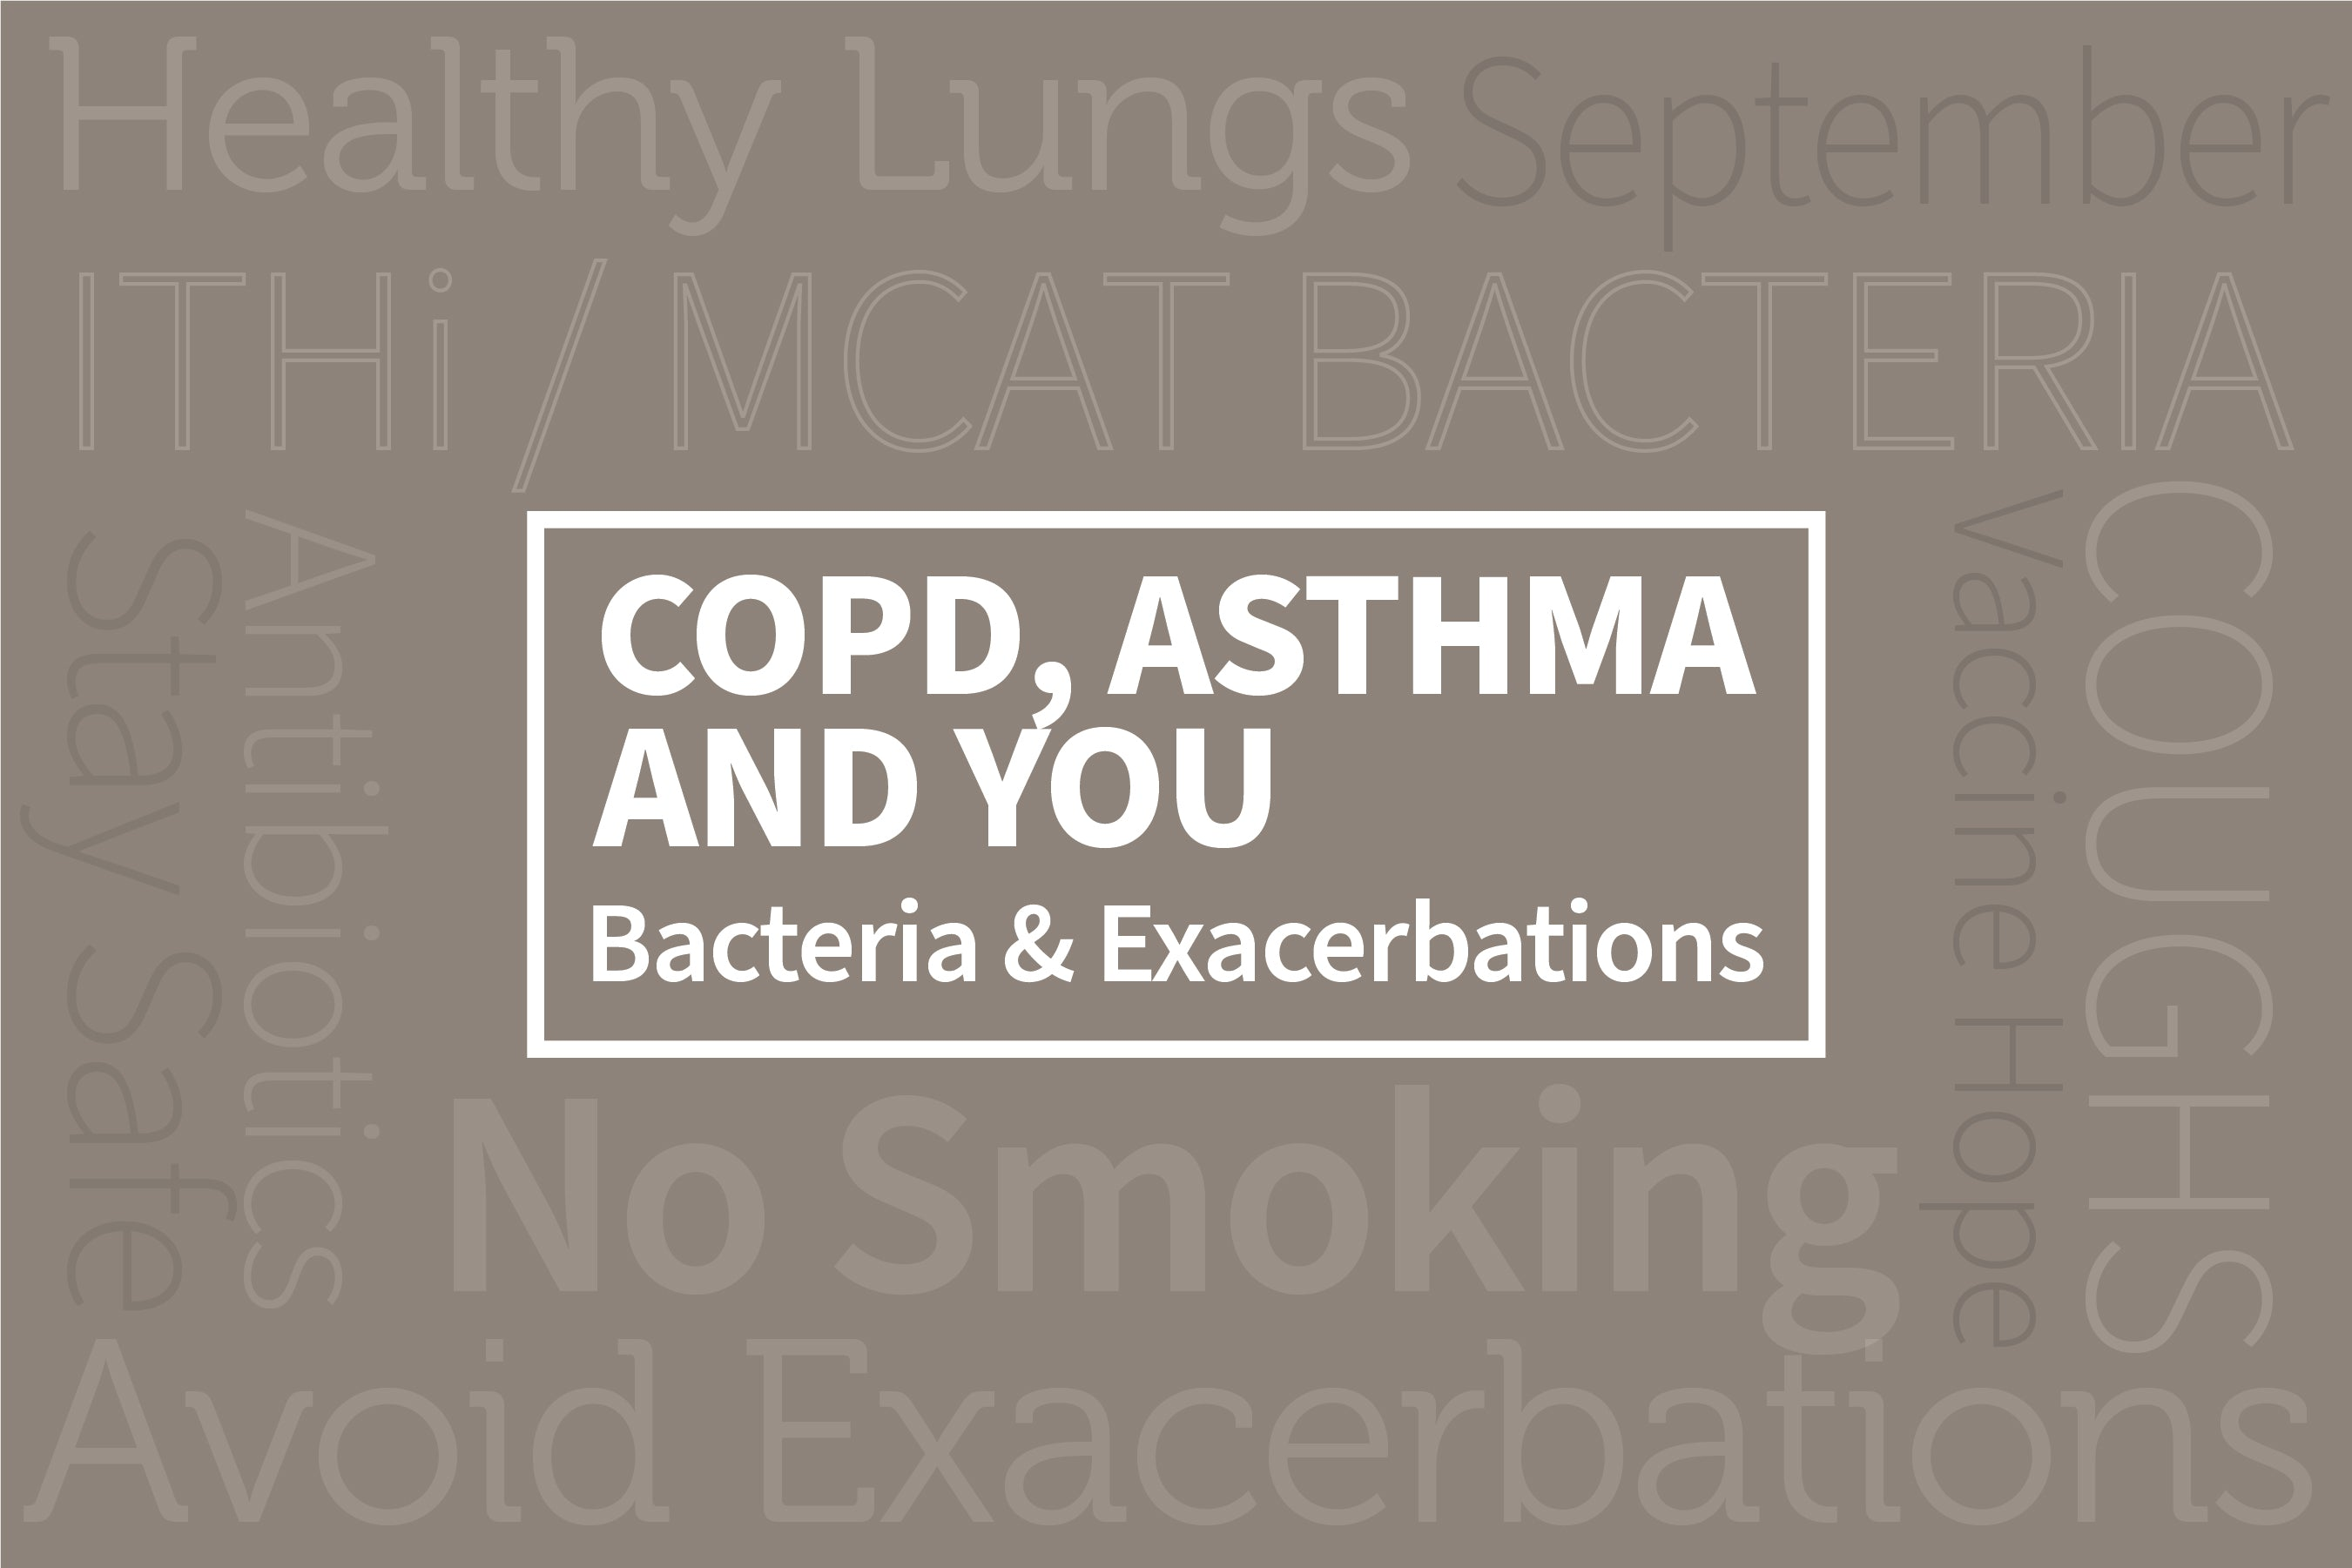 COPD, Asthma, and YOU: Bacteria Linked to COPD Exacerbations